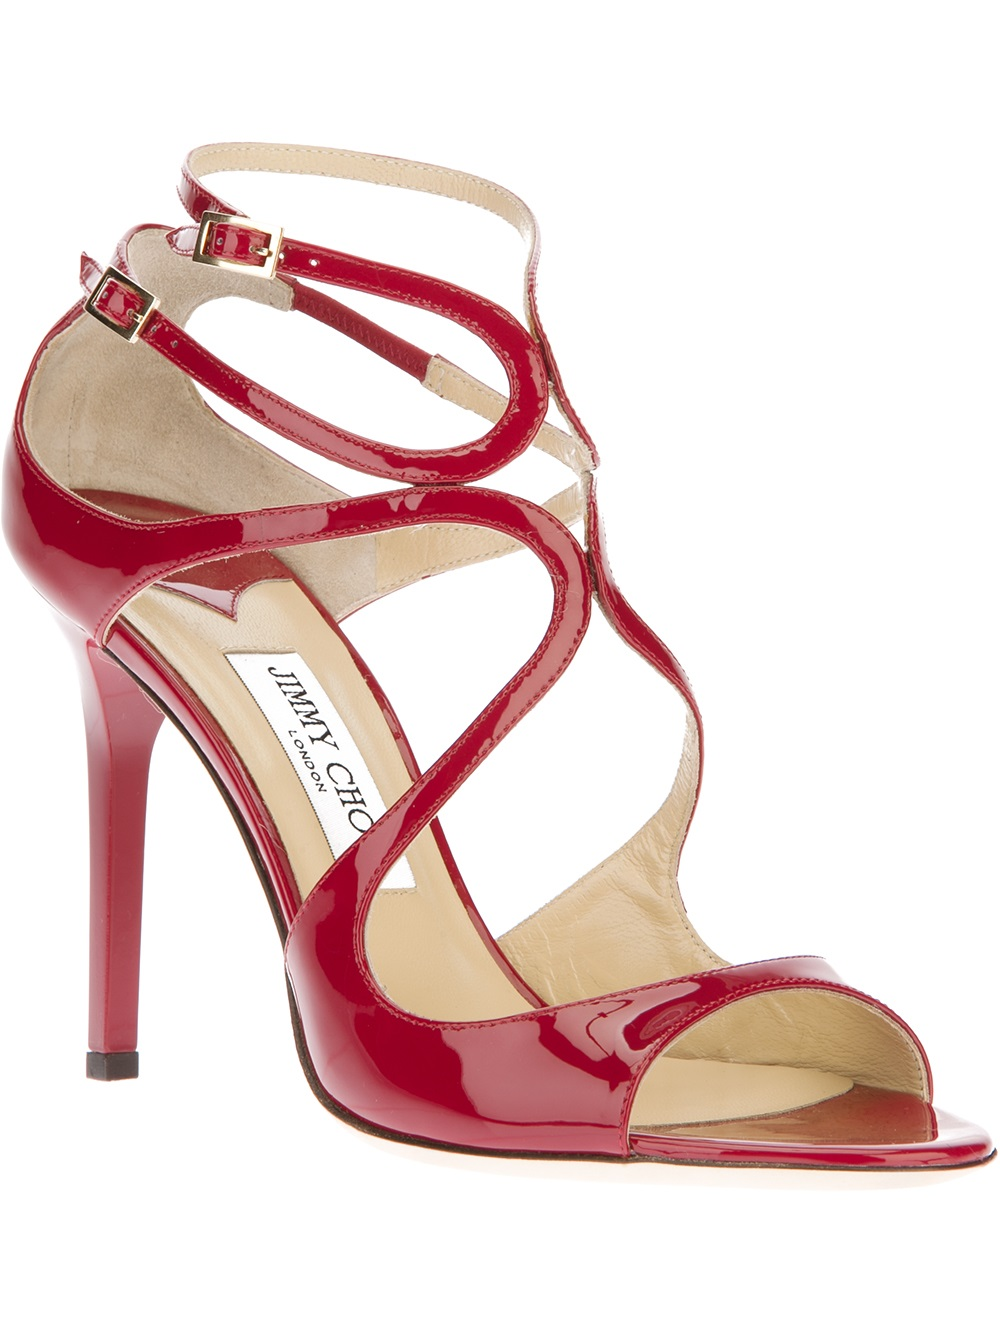 Jimmy Choo Lang Patent Sandal In Red Lyst